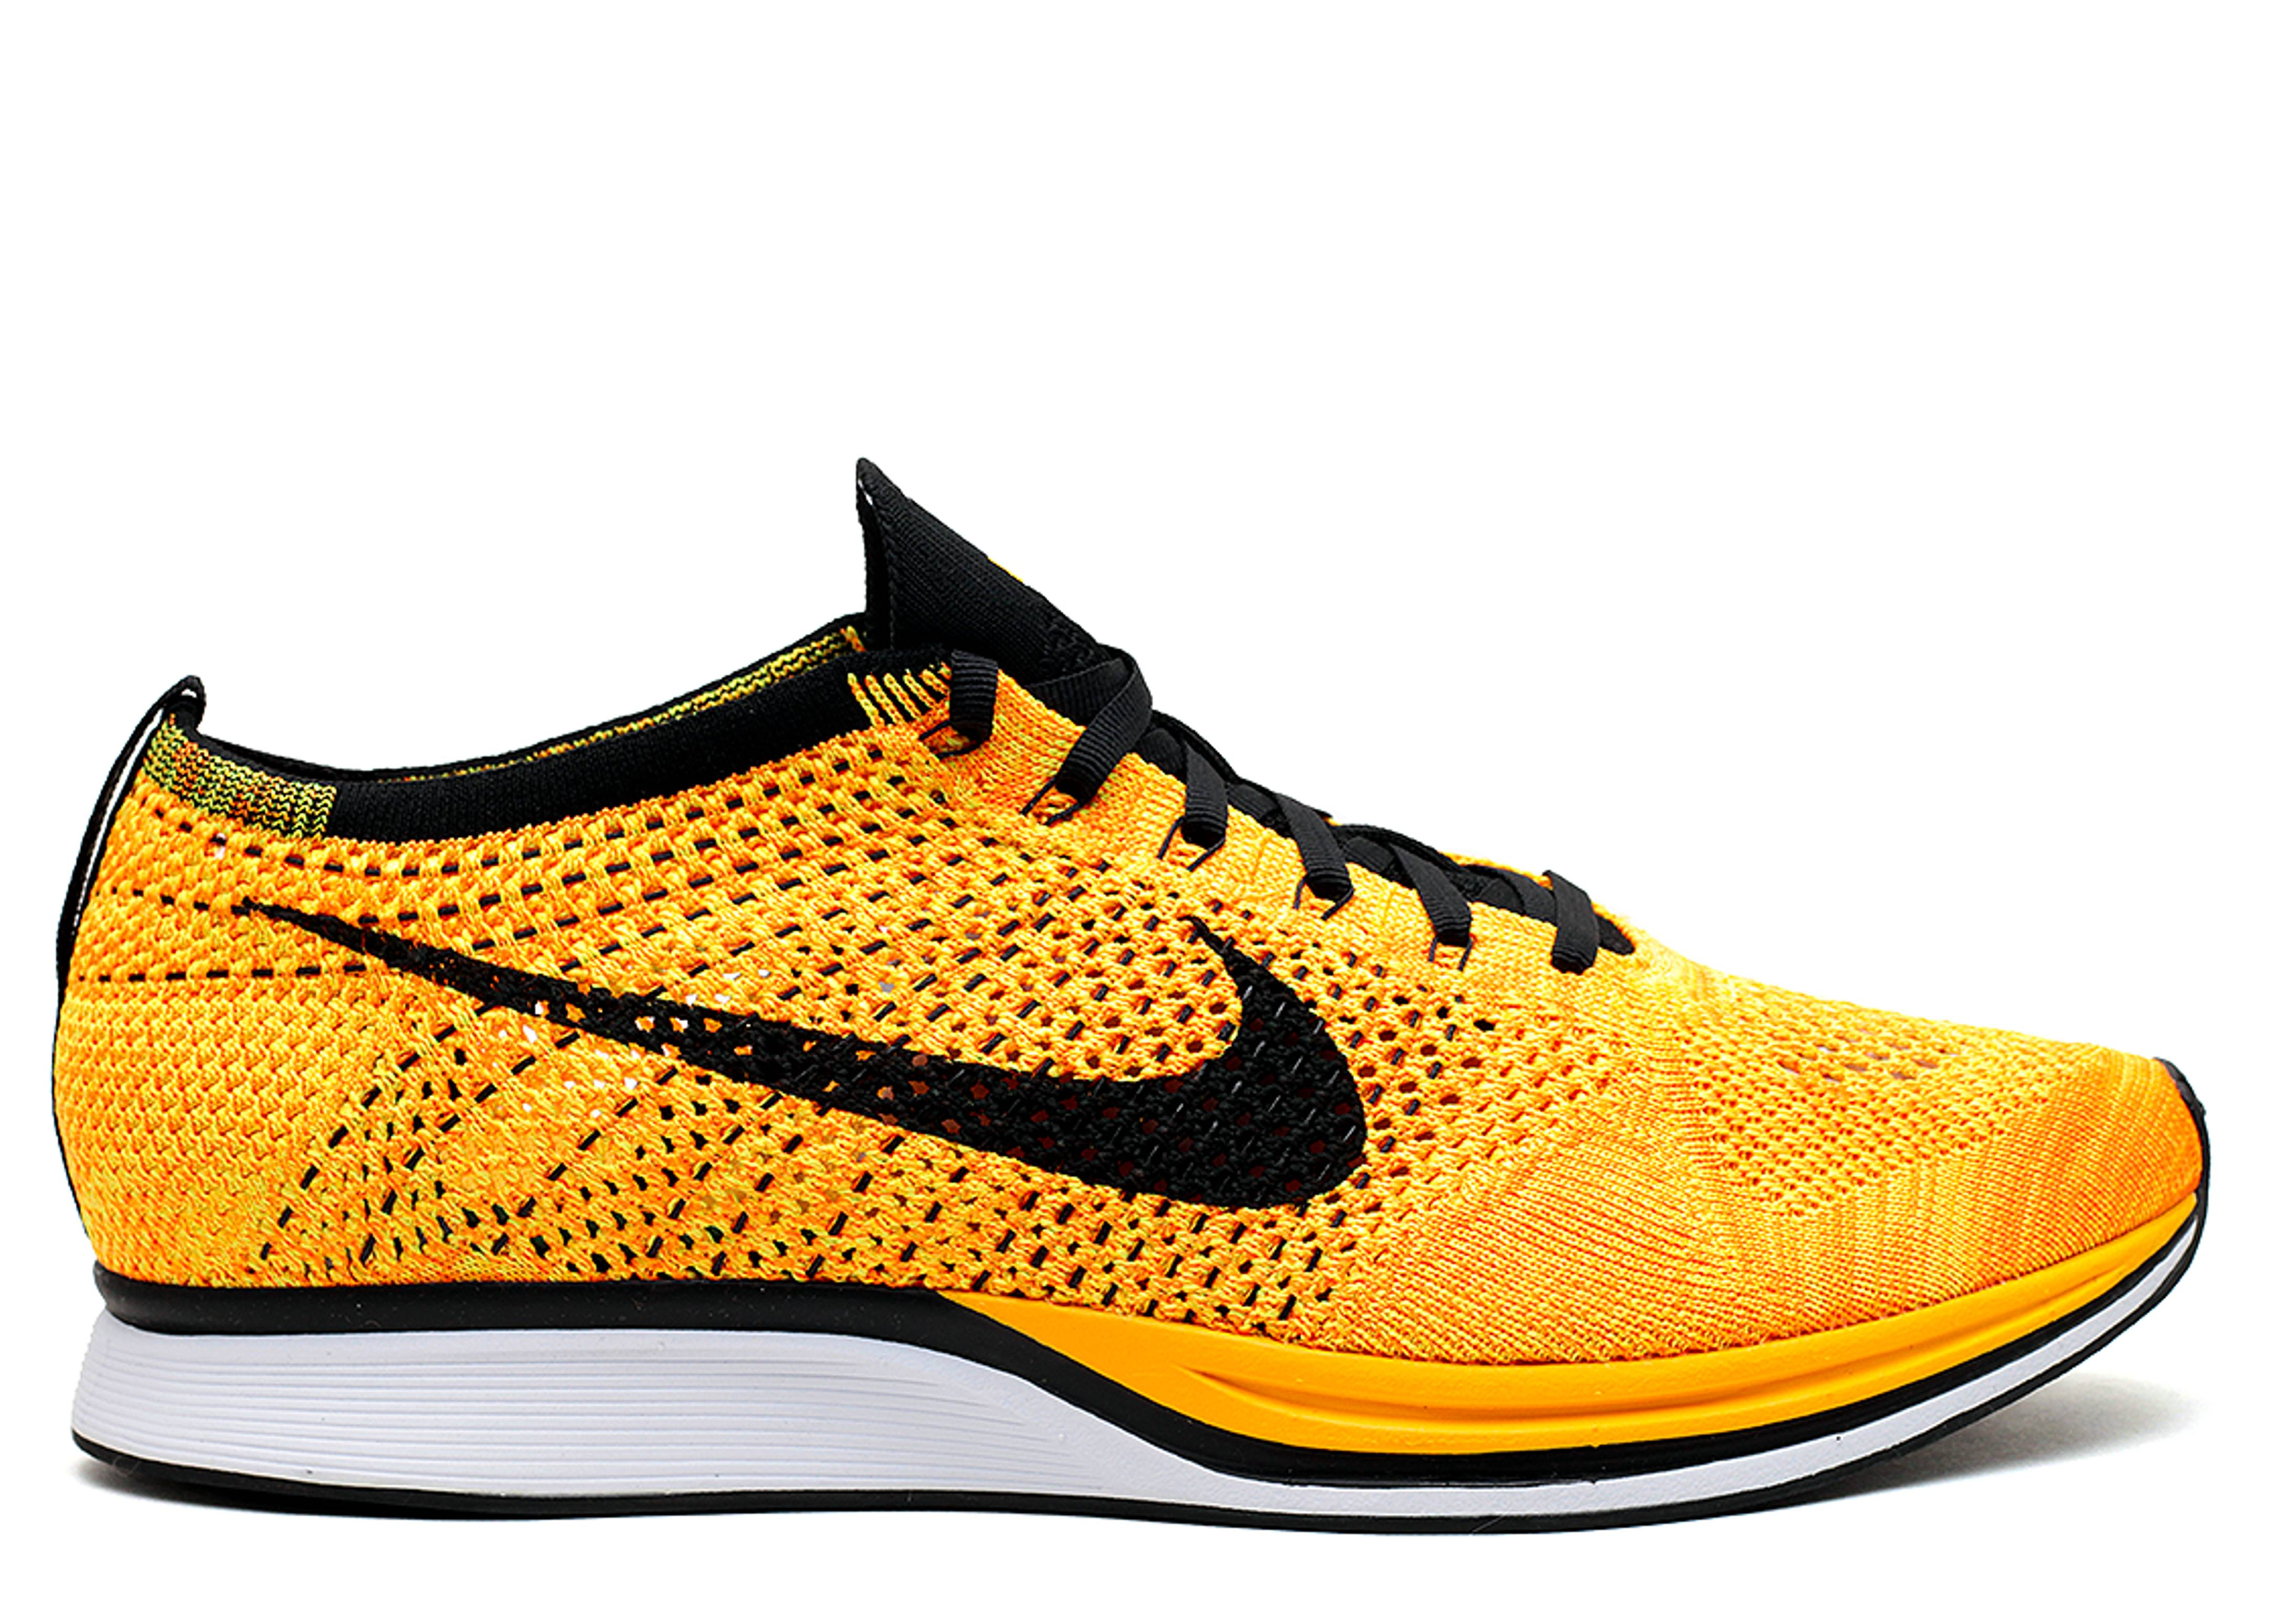 a103fb915de8 Flyknit Racer - Nike - 526628 808 - team orange black-lsr orng vlt ...